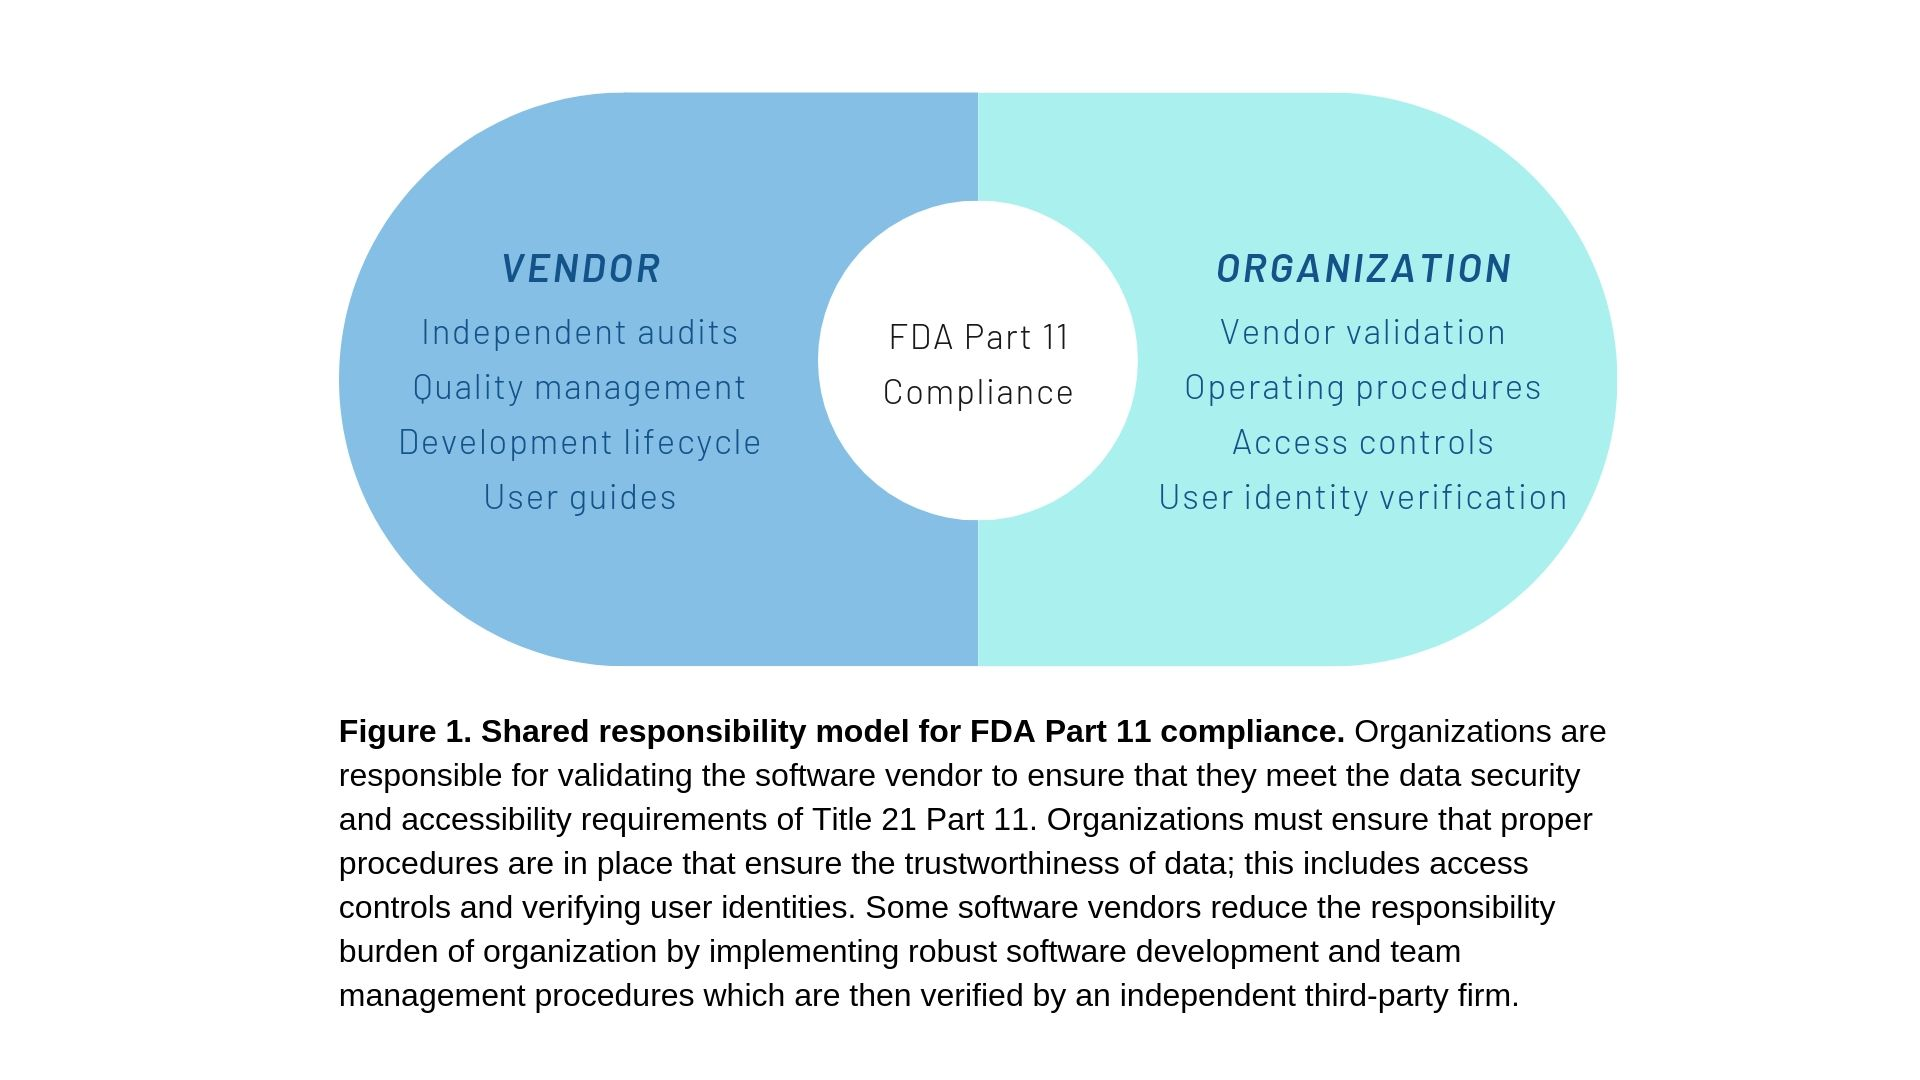 Figure 1. Shared responsibility for FDA compliance